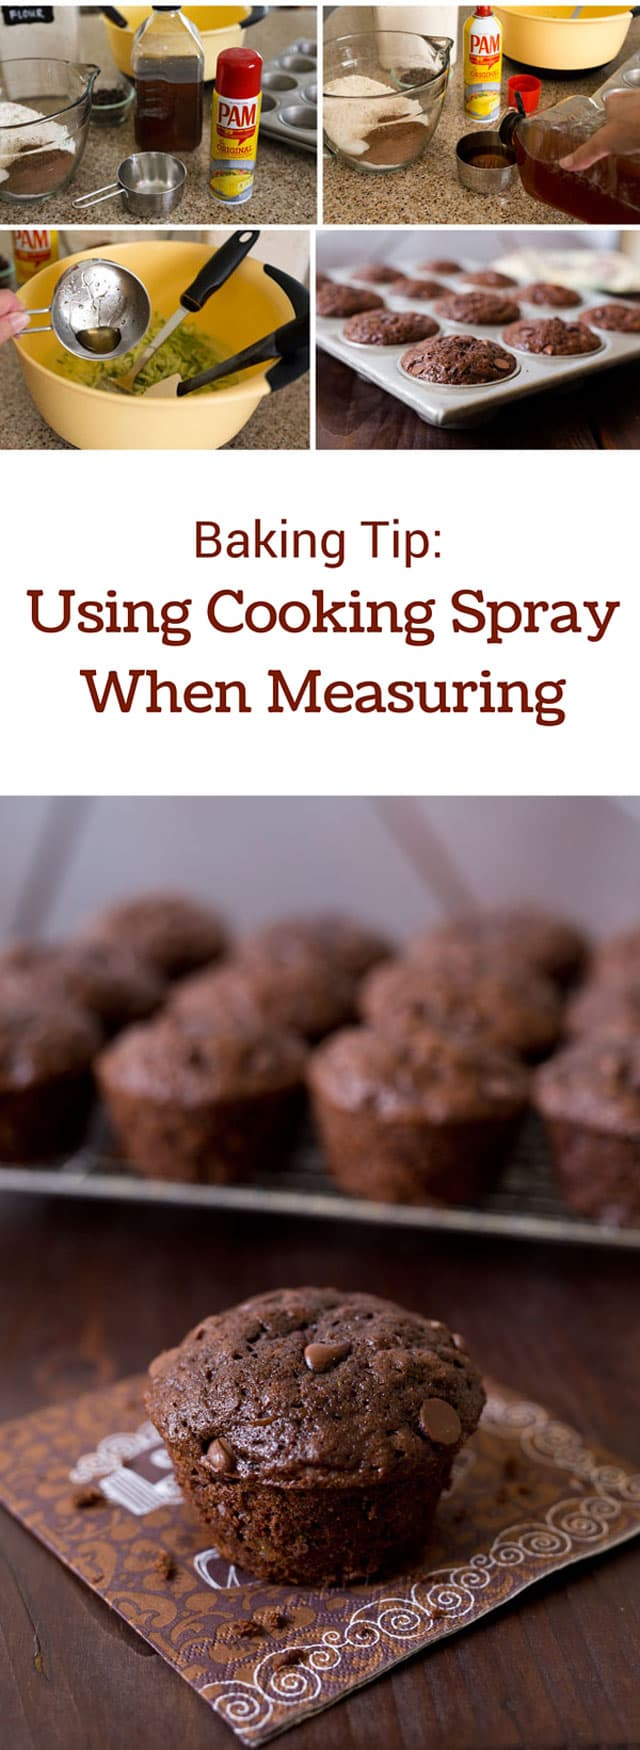 Using-PAM-Cooking-Spray-When-Measuring-Collage-Barbara-Bakes